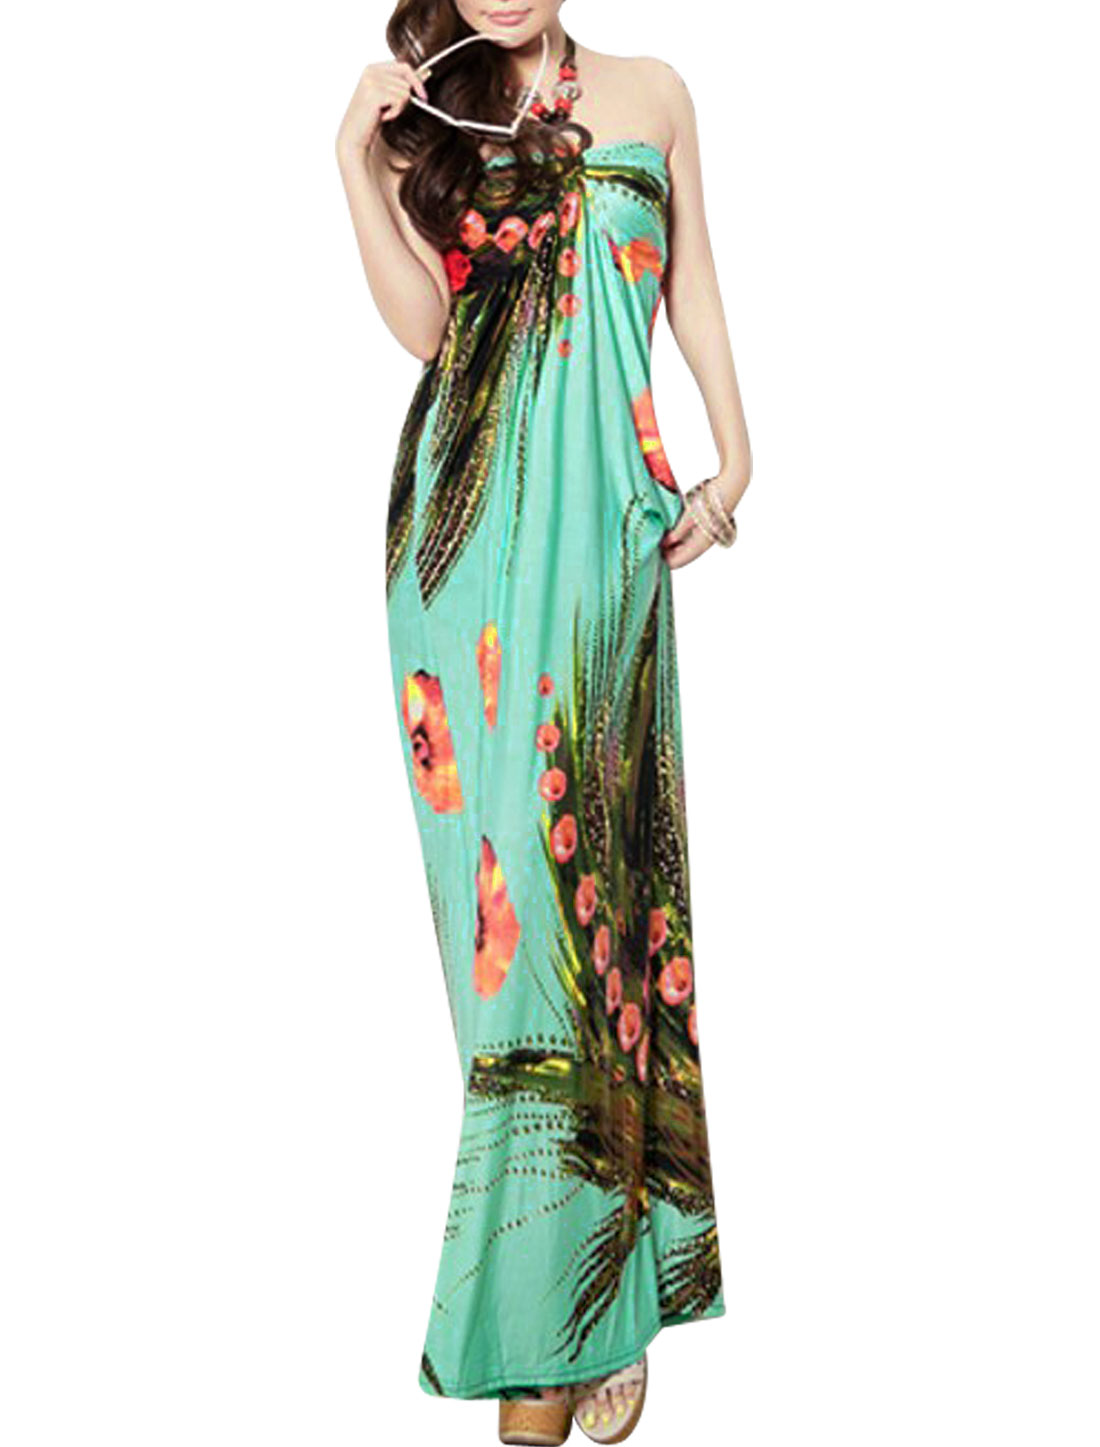 Women Padded Bust Vacation Bohemian Self Tie Halter Dress Teal XS